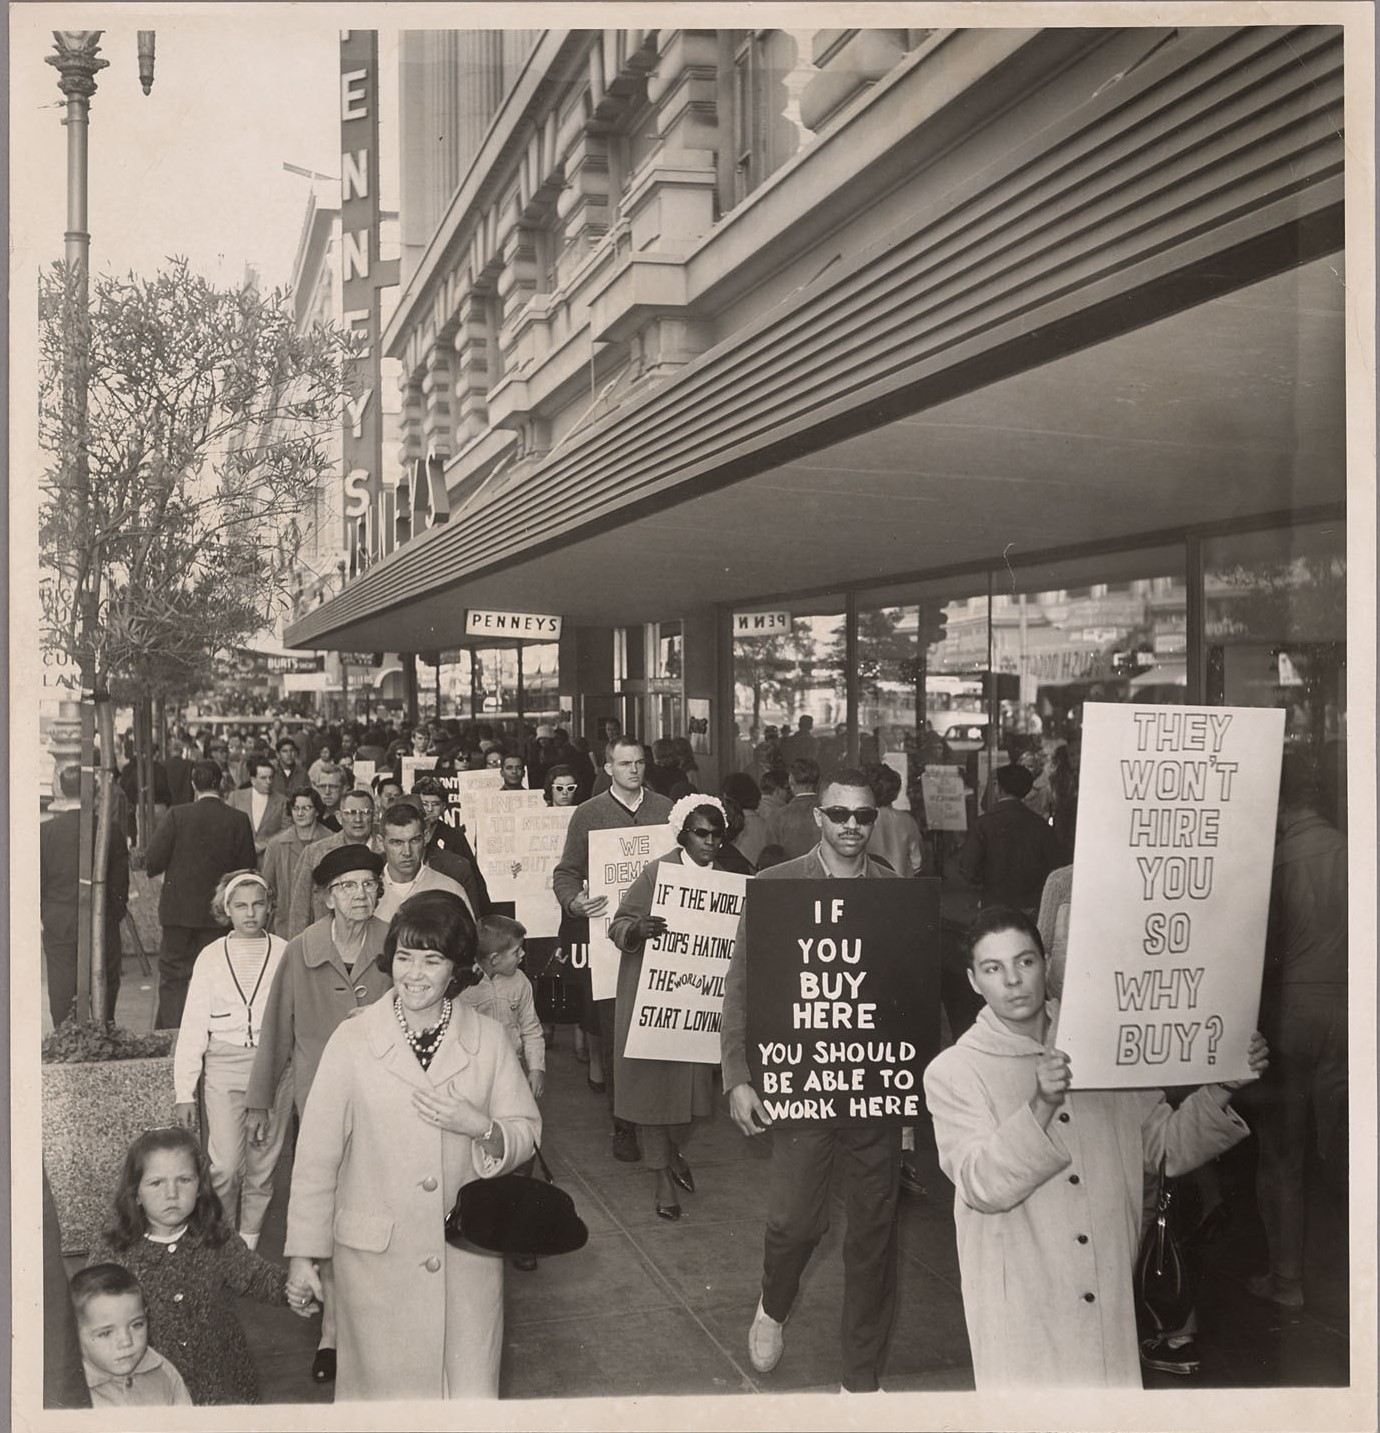 Photograph of picketers outside of J. C. Penney's